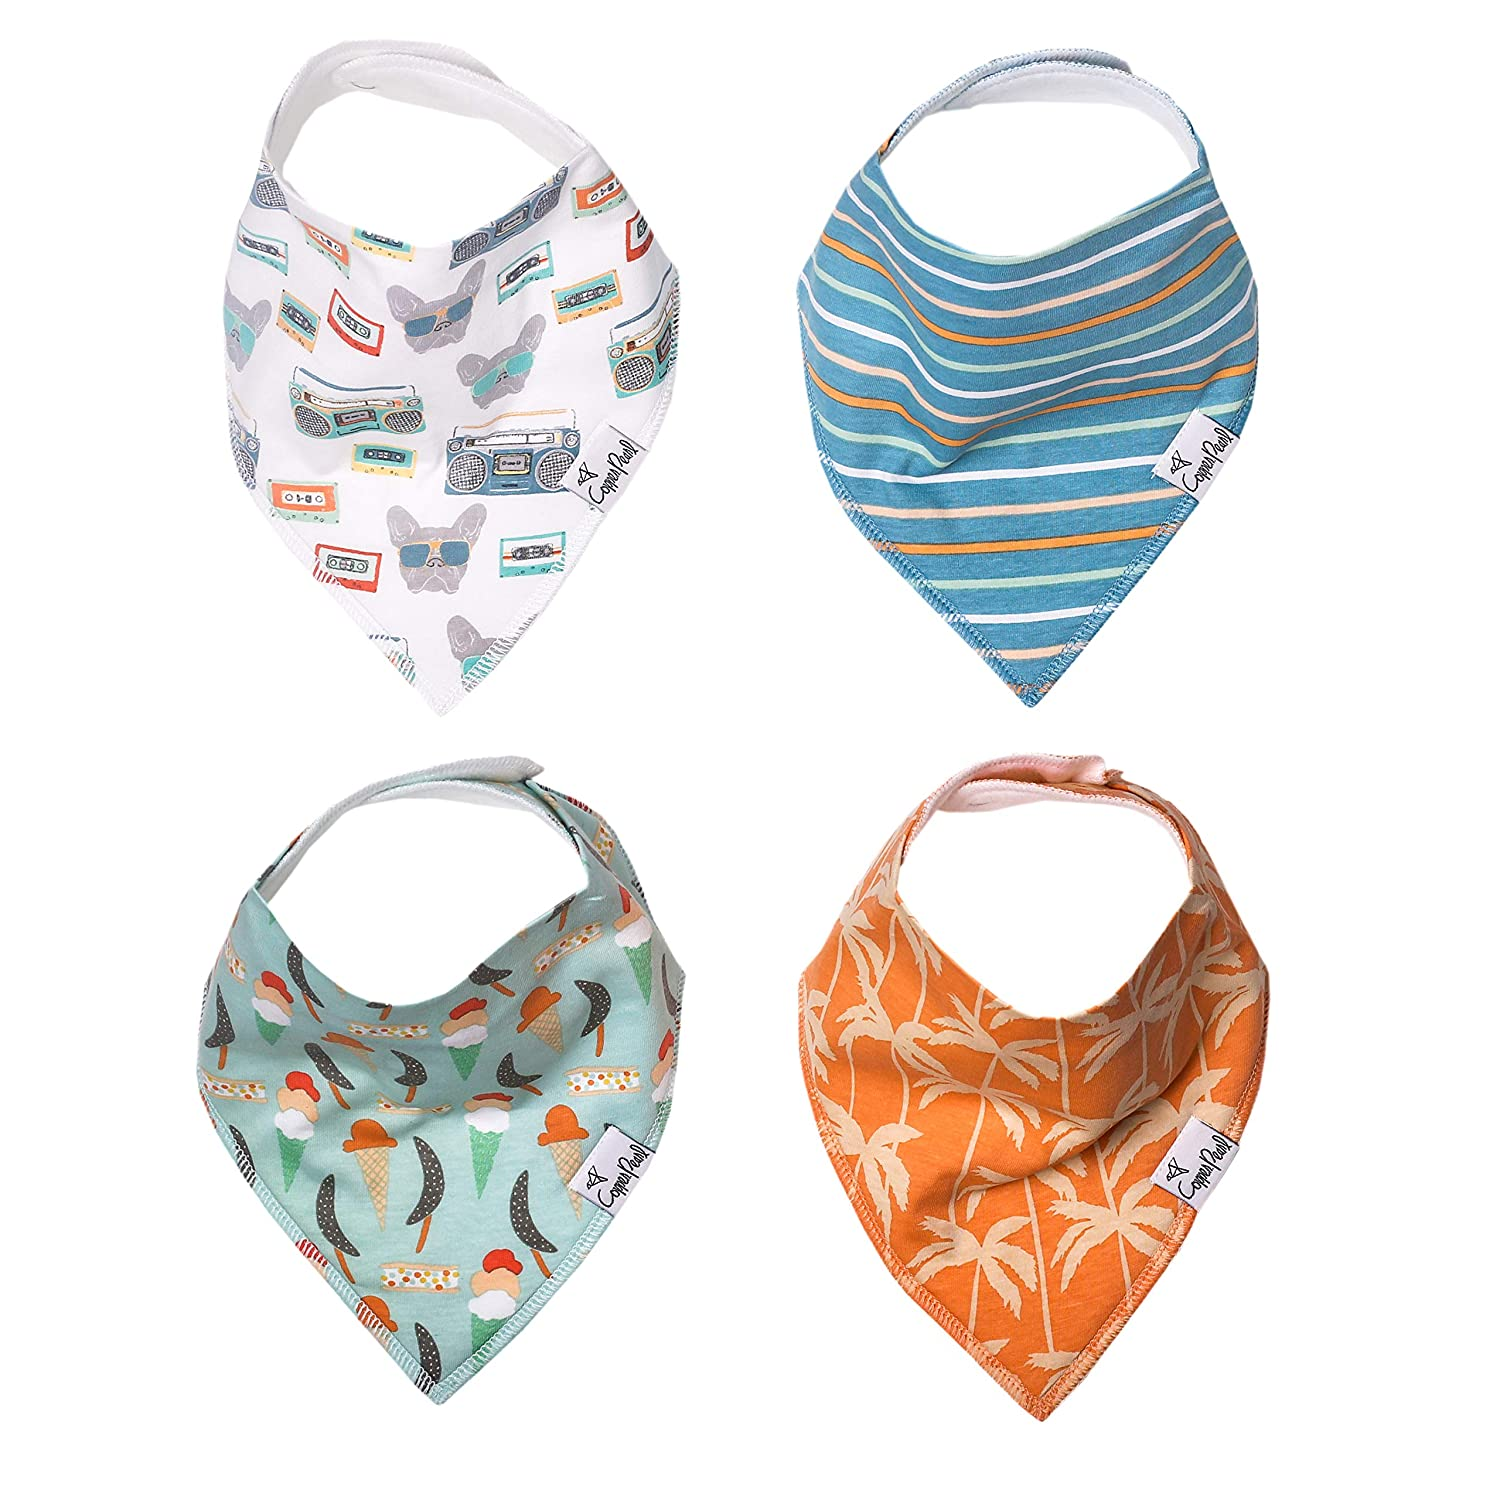 "Baby Bandana Drool Bibs for Drooling and Teething 4 Pack Gift Set ""Bruno"